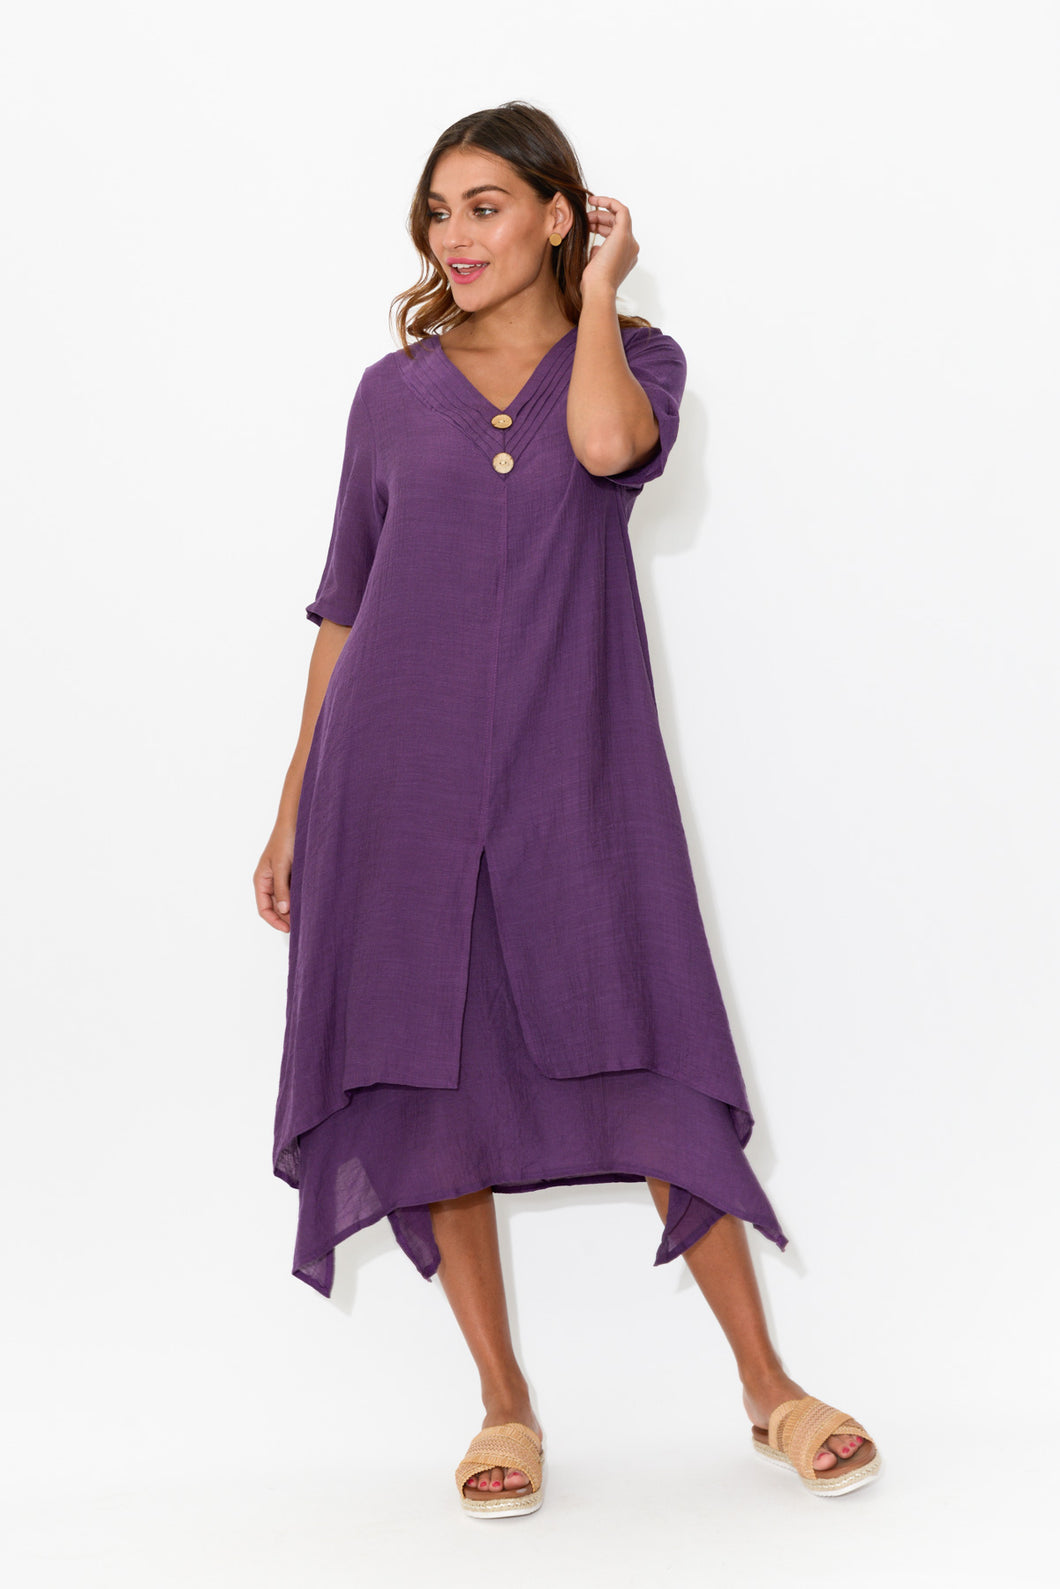 Nala Purple Layers Dress - Blue Bungalow